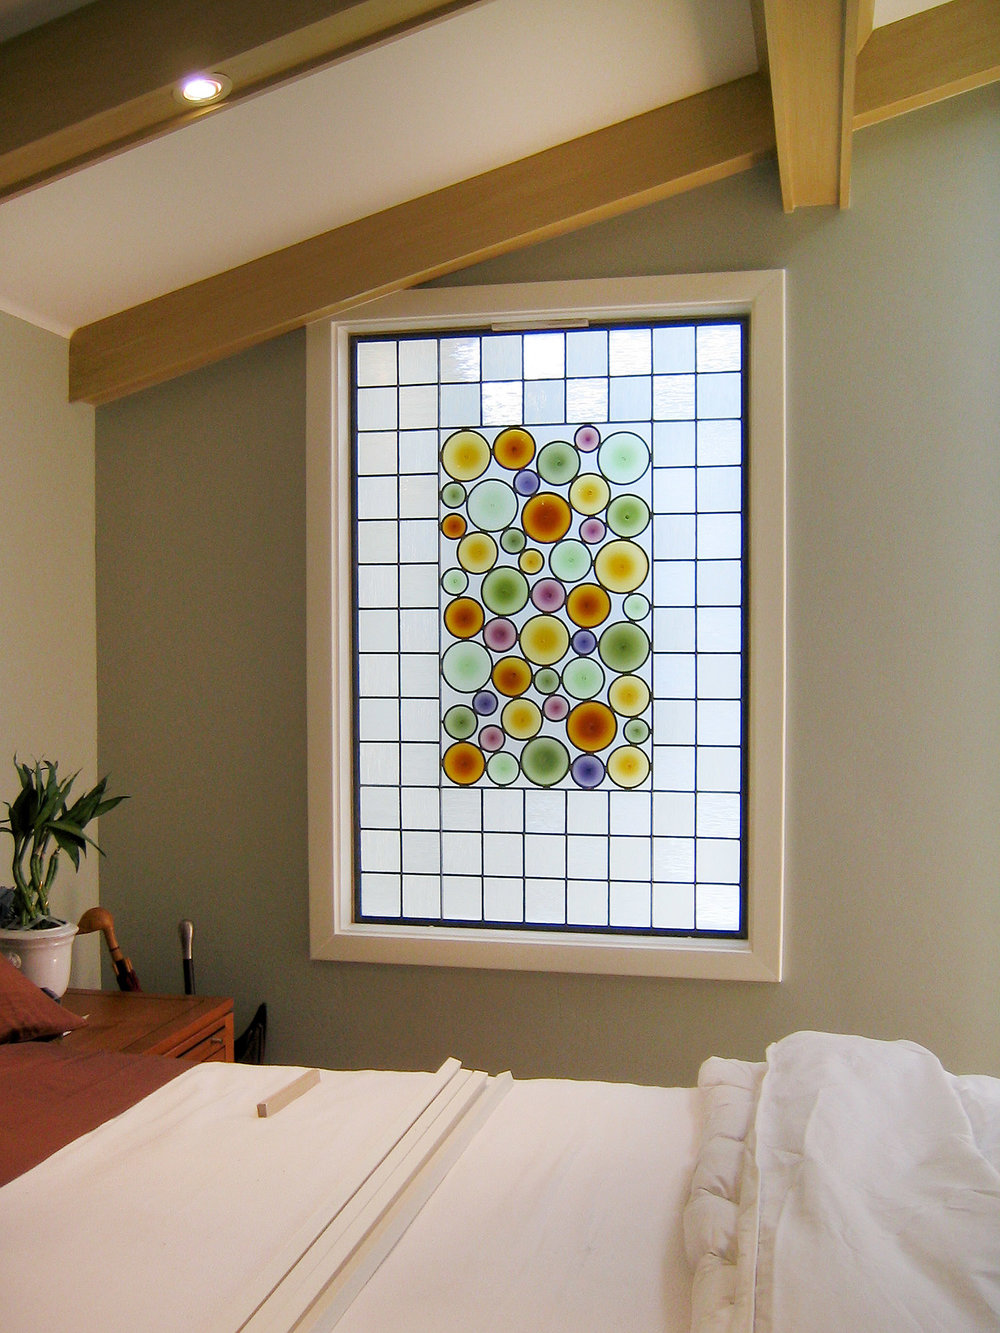 rondel bottleglass abstract stained glass art palo alto atherton menlo park san jose san francisco bay area.jpg